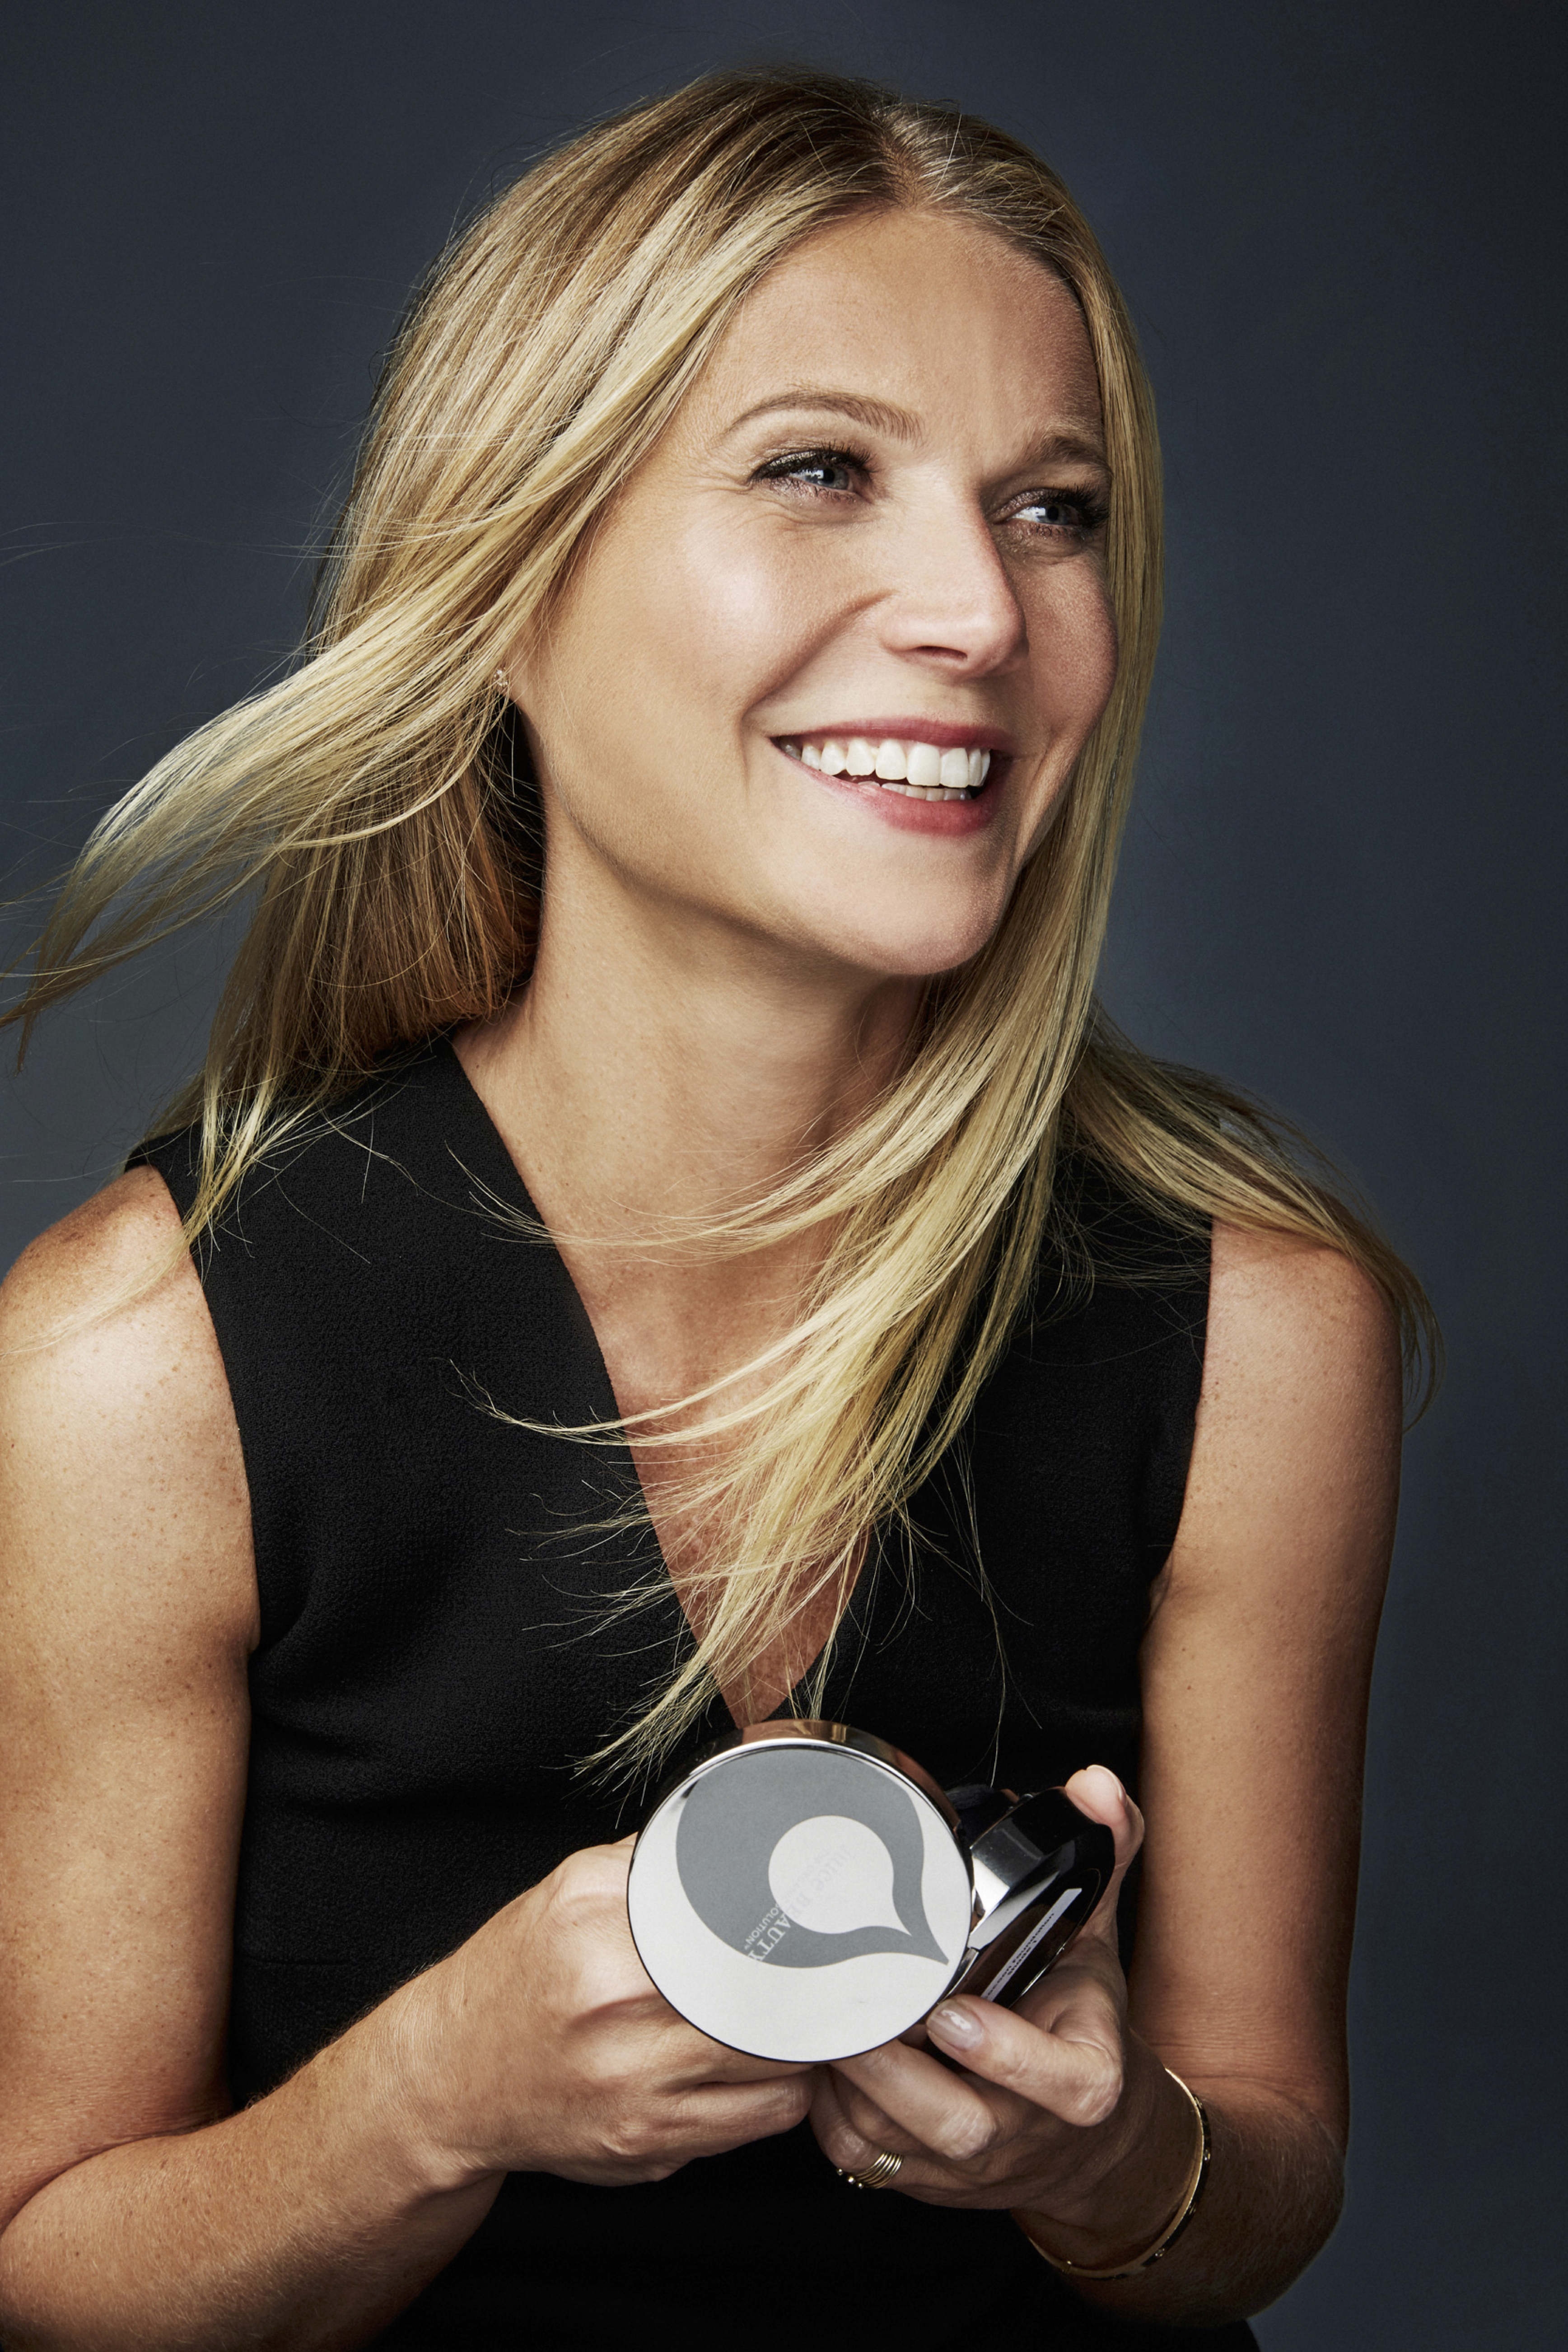 Gwyneth Paltrow is the creative director of makeup for Juice Beauty.